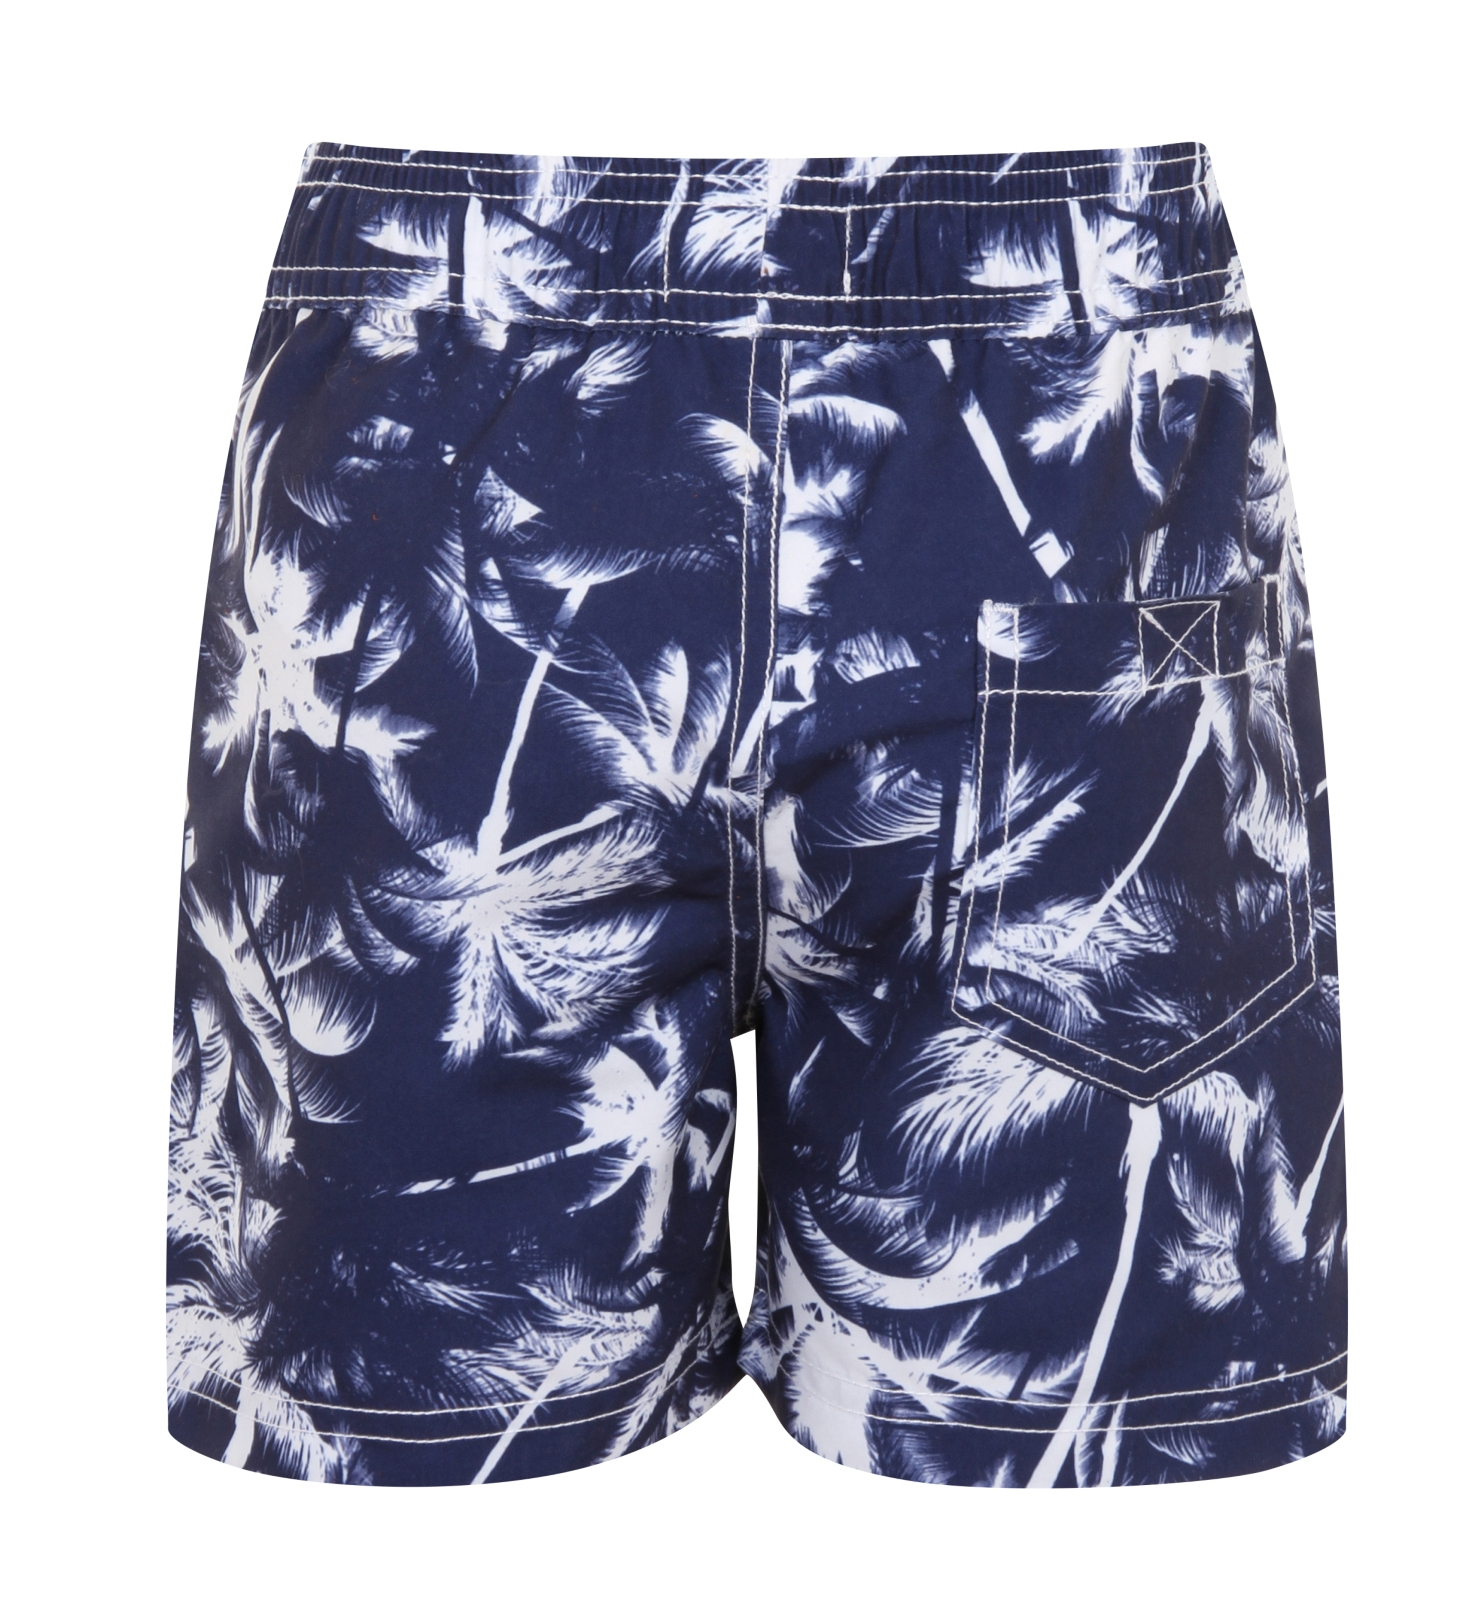 Boys Swim Shorts Swimming Trunks Casual Beach Holiday ...